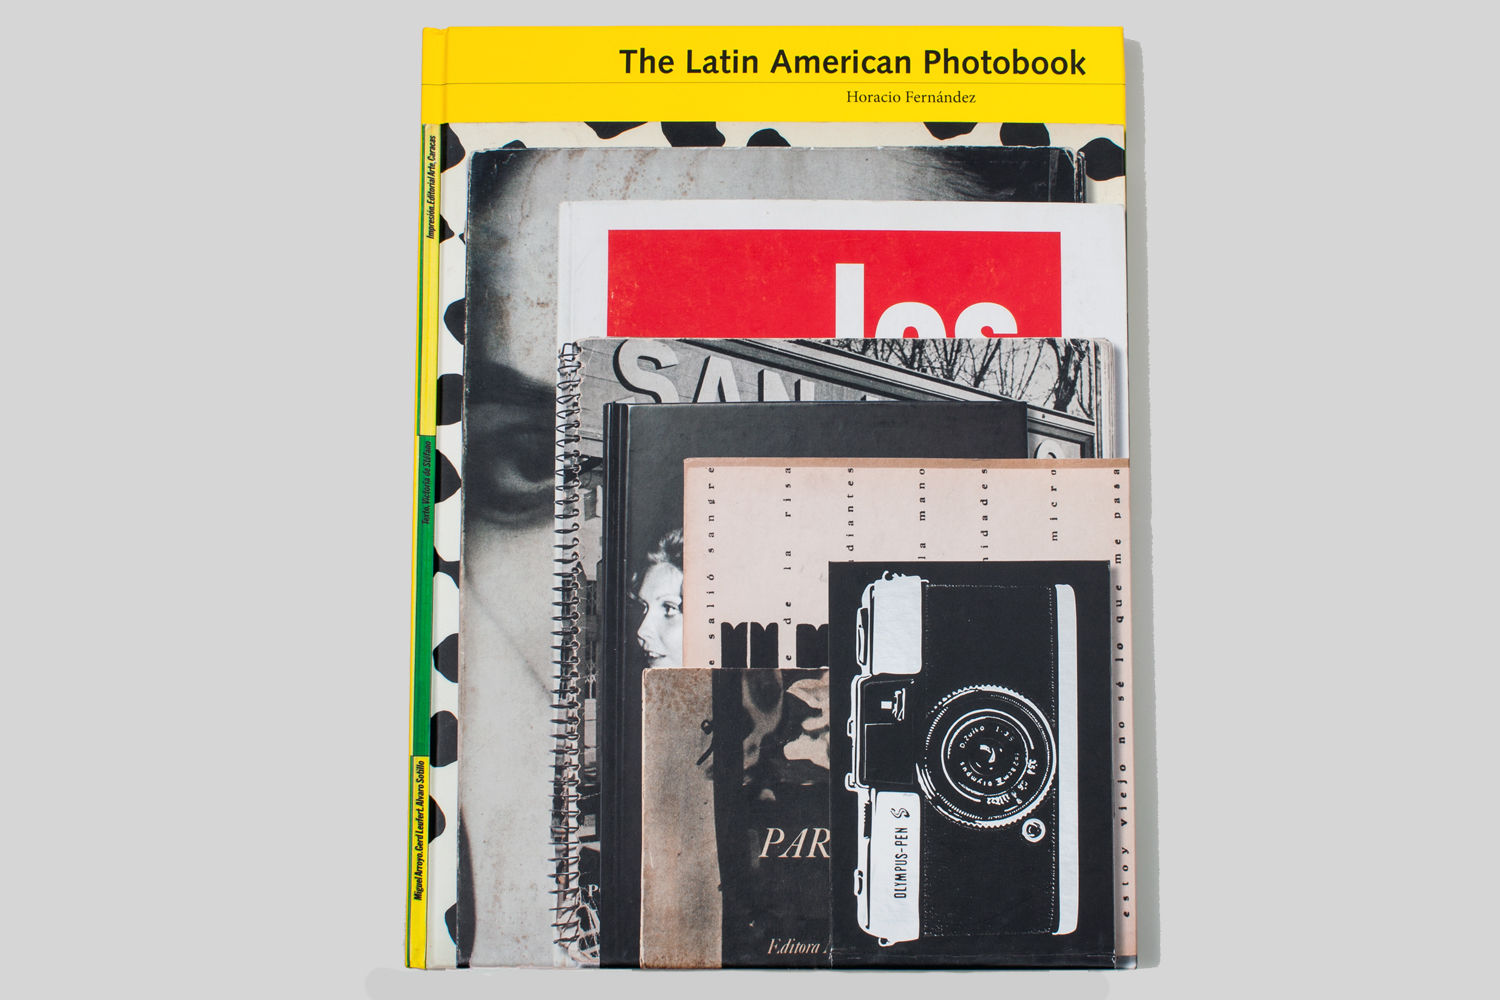 The Latin American Photobook by Horacio Fernández, selected by Anne-Celine Jaeger, author of Image Makers, Image Takers - The Essential Guide to Photography by Those in the Know